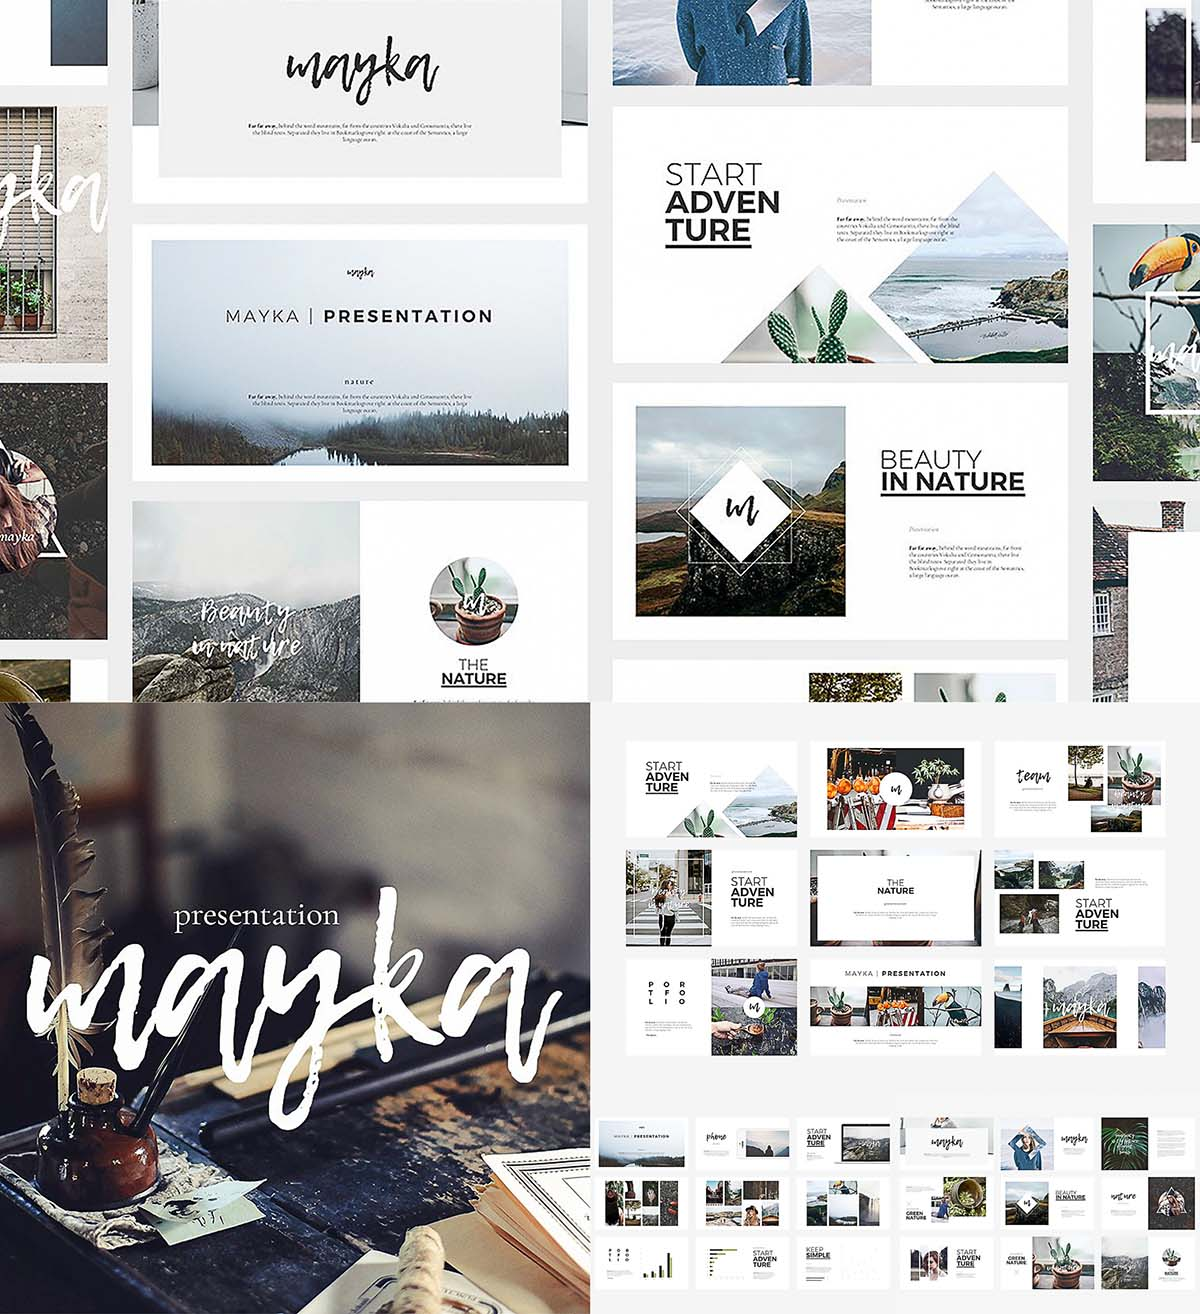 Mayka powerpoint template free download mayka powerpoint template toneelgroepblik Gallery